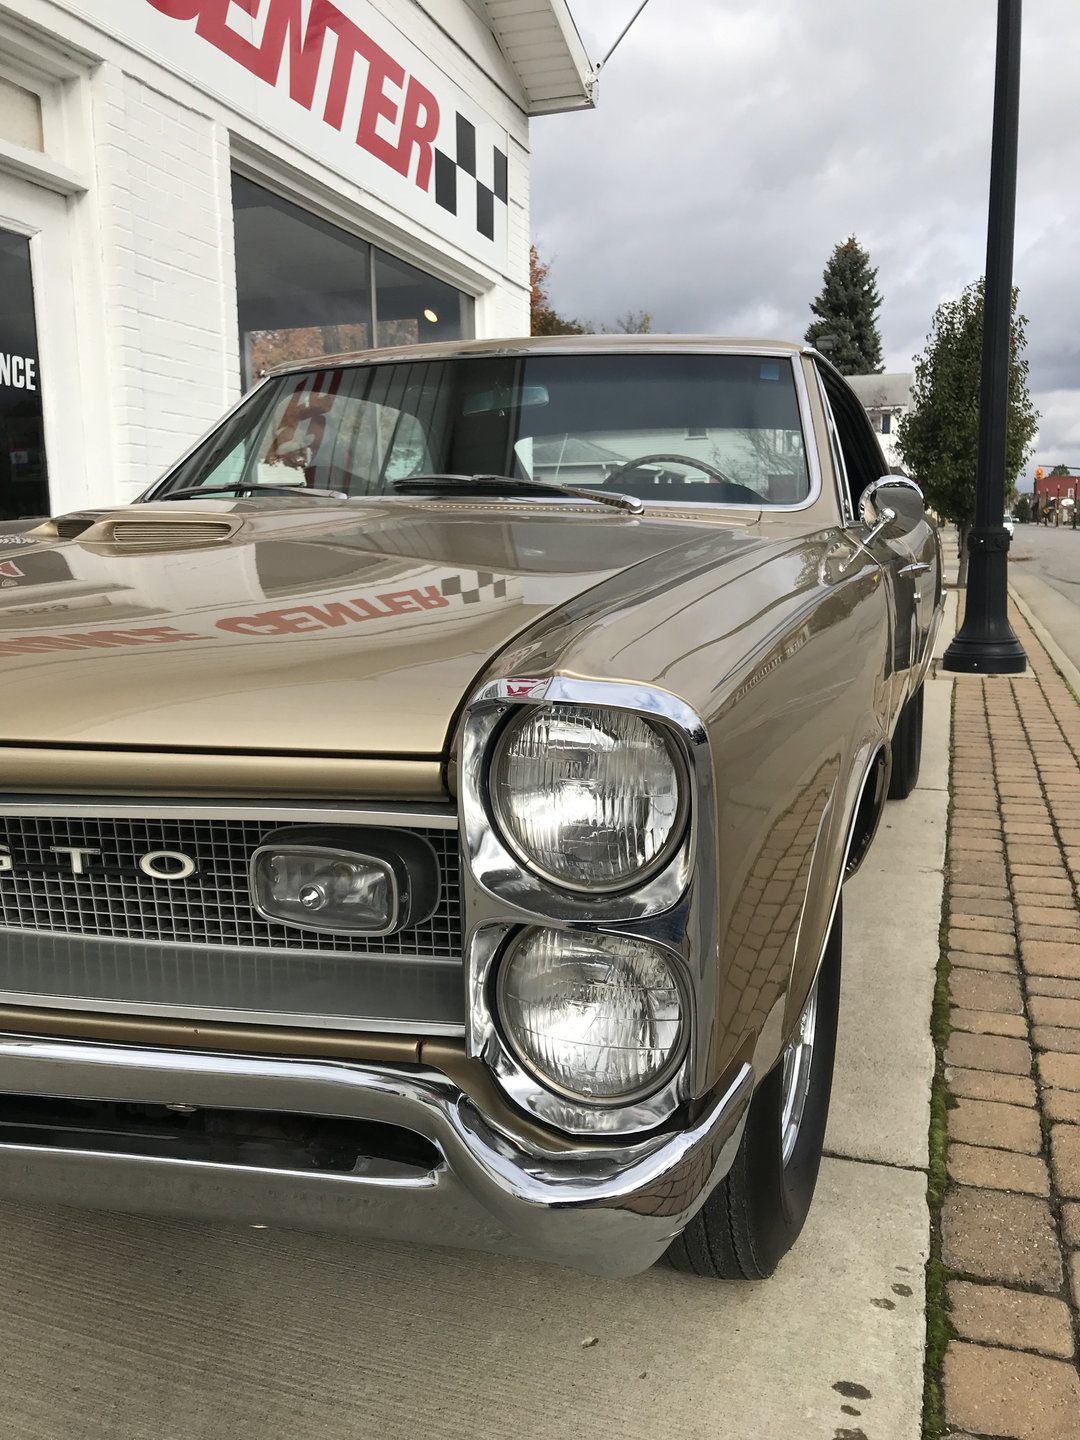 1966 Pontiac GTO. Back Zoom icon. Show Pictures